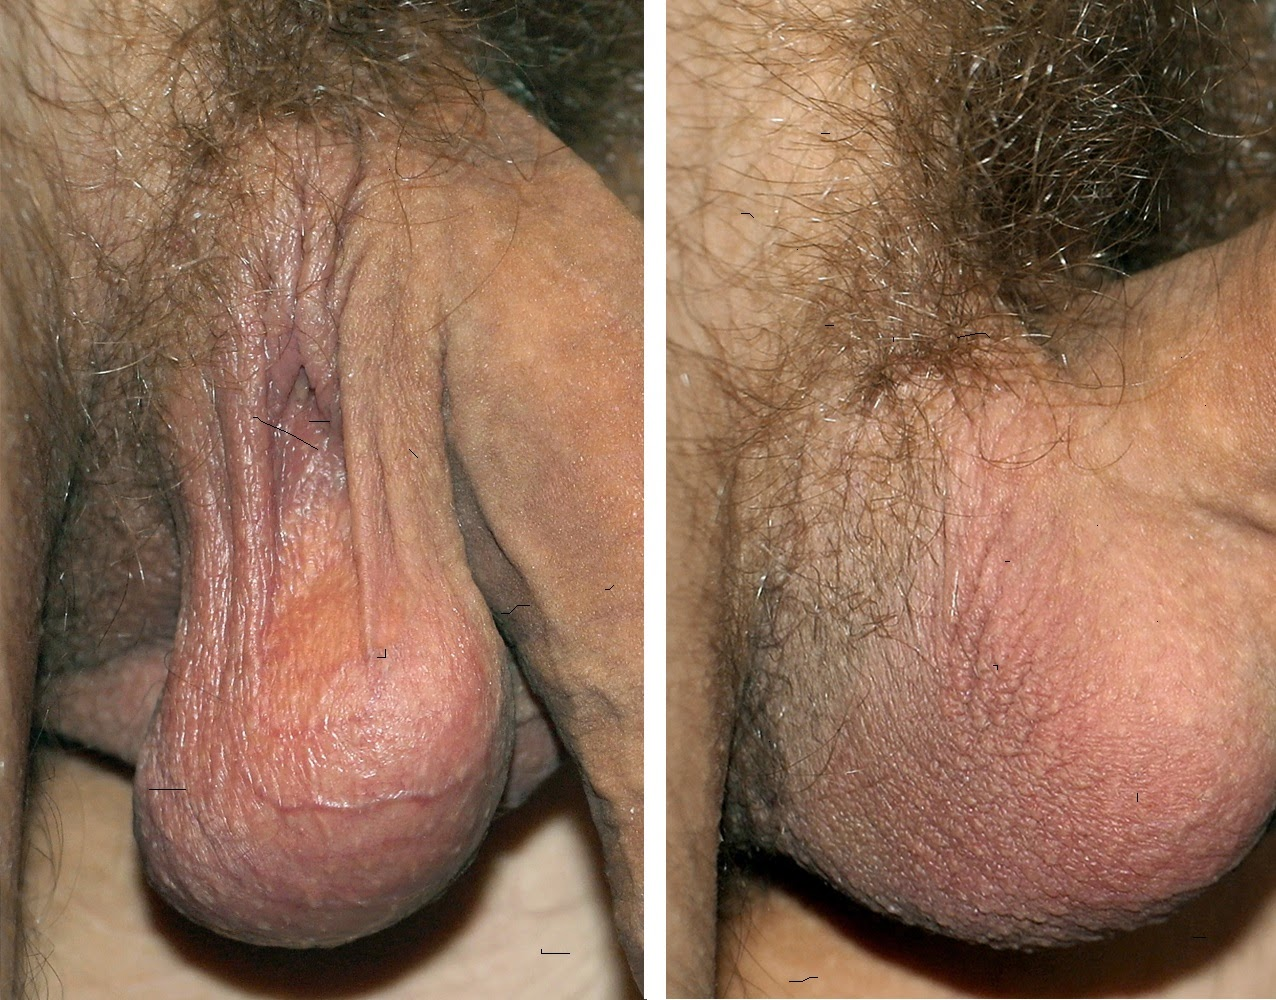 Male scrotum of a Southern European male, 30 years old